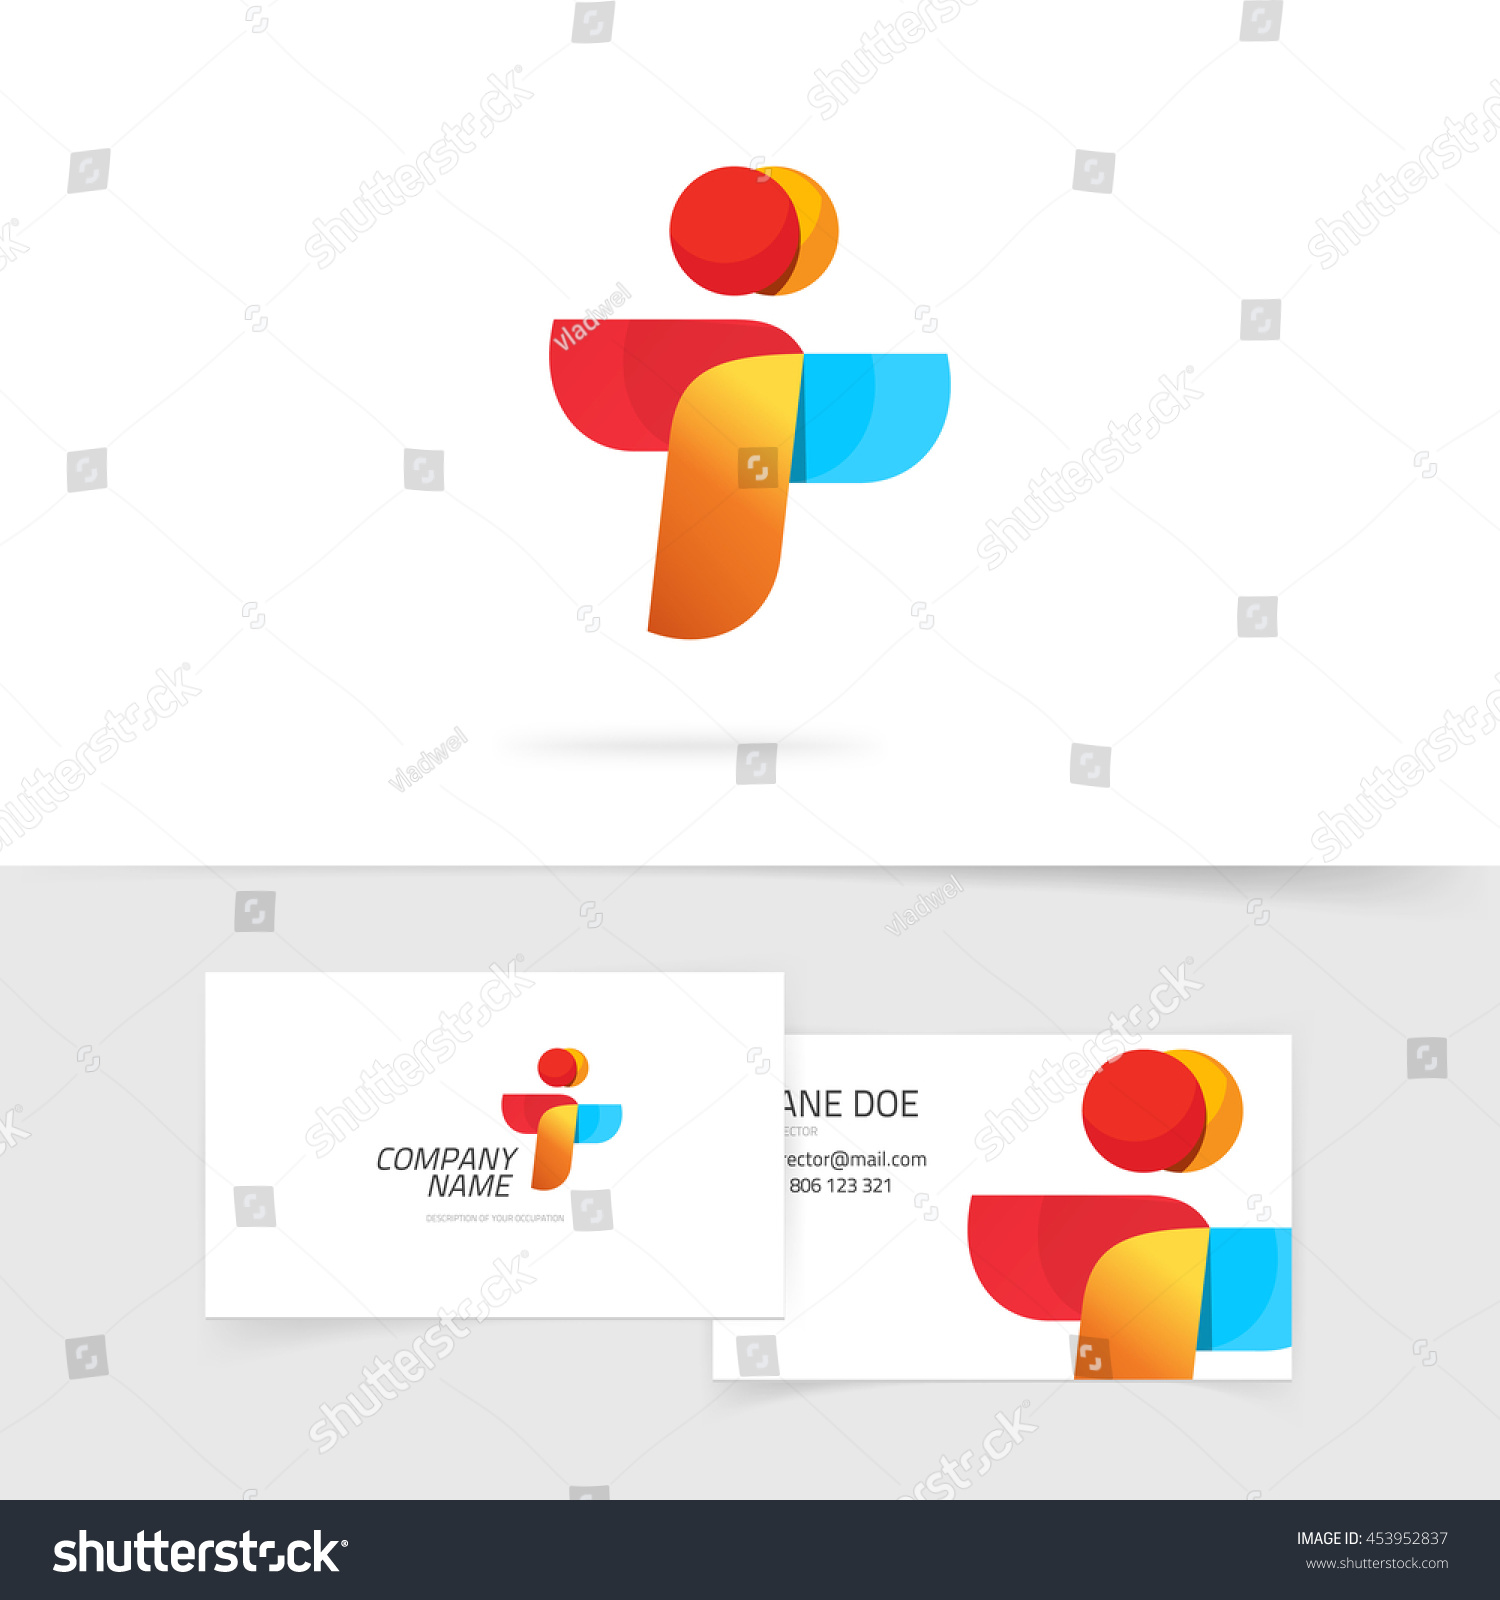 Two People Logo Business Card Design Stock Illustration